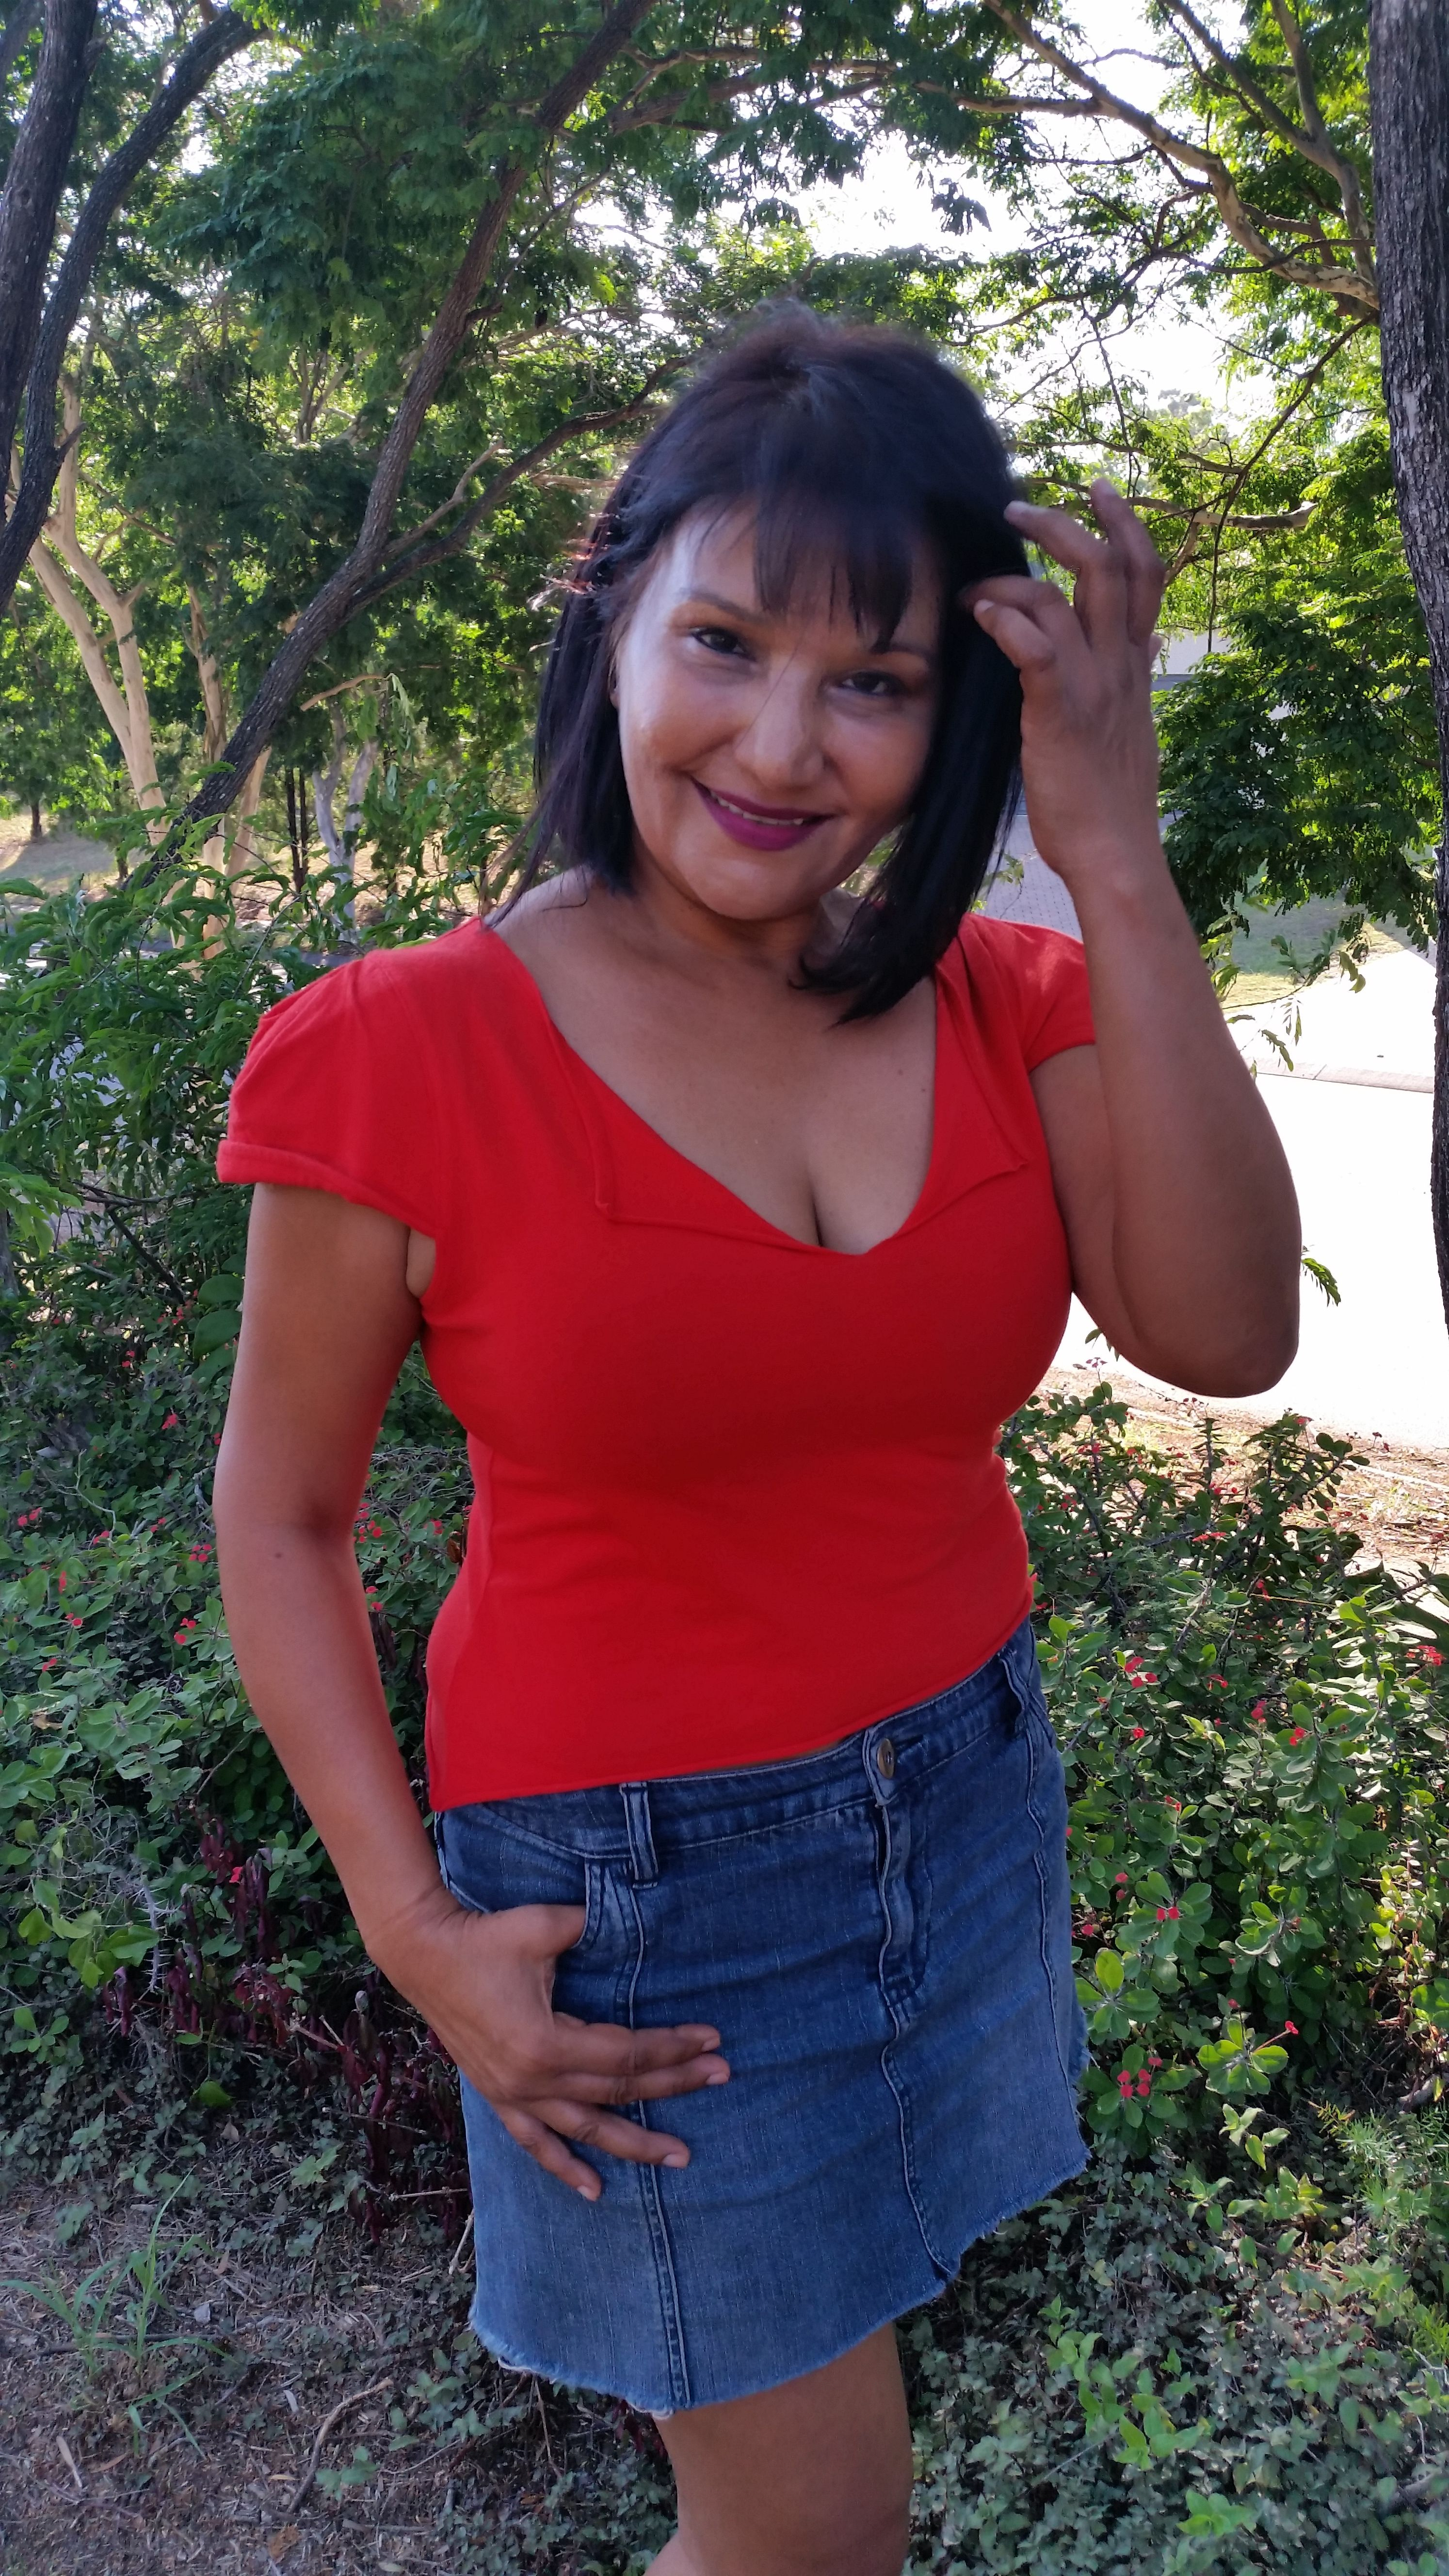 hispanic singles in southside Hispanic single women - we are one of the greatest online dating sites with more relationships, more dates and more marriages than any other dating site and of course, it's a good idea to obtain specific recommendations on professional services that are built and those that are not.